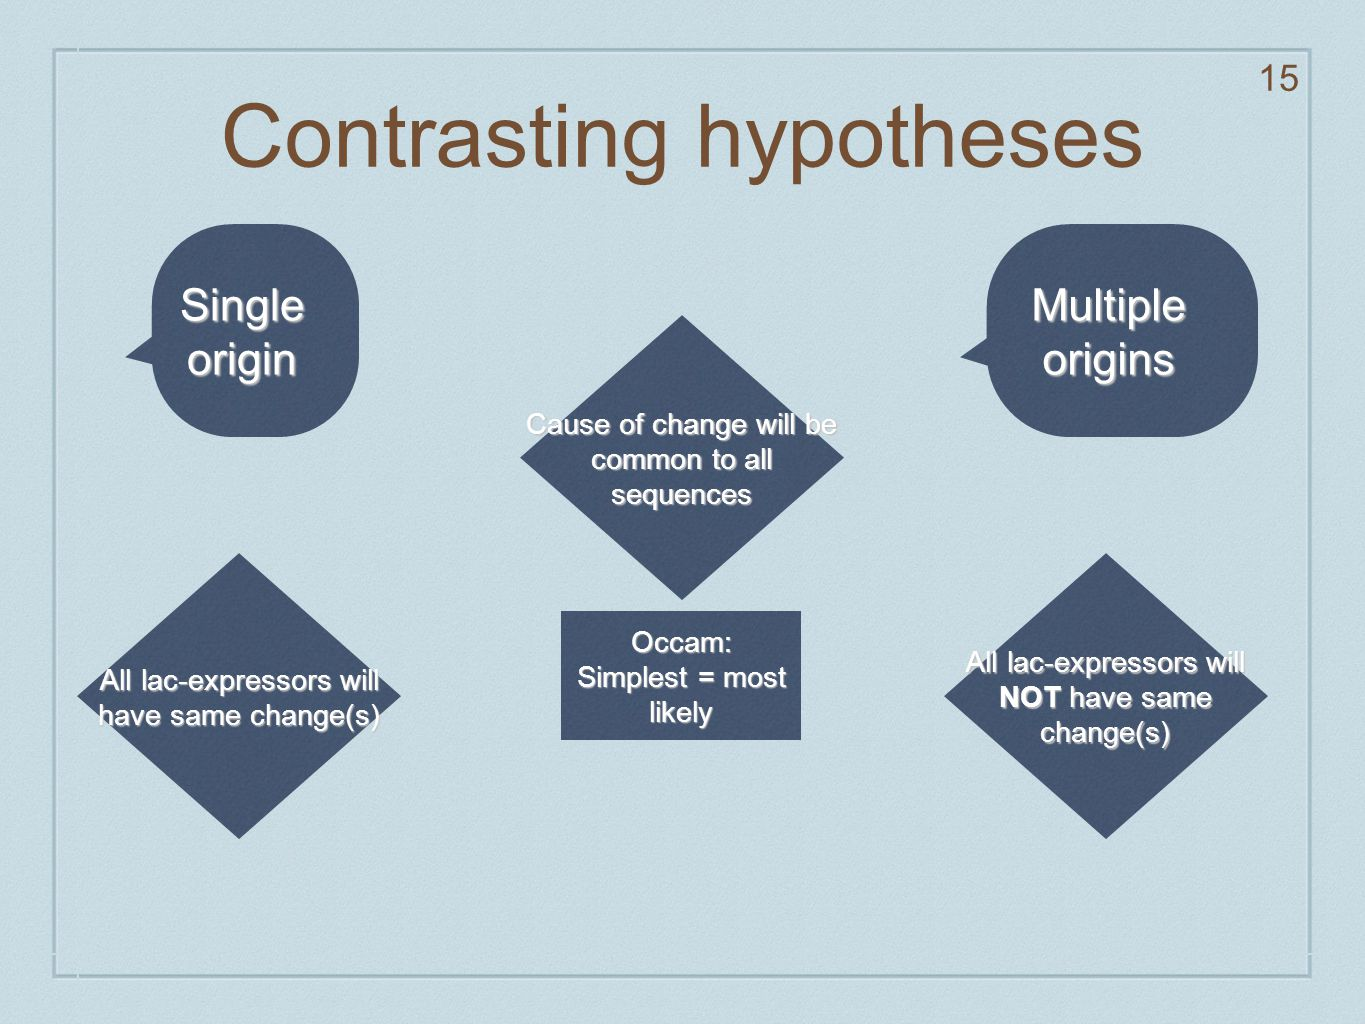 Contrasting hypotheses 15 Cause of change will be common to all sequences Occam: Simplest = most likely Single origin All lac-expressors will have sam